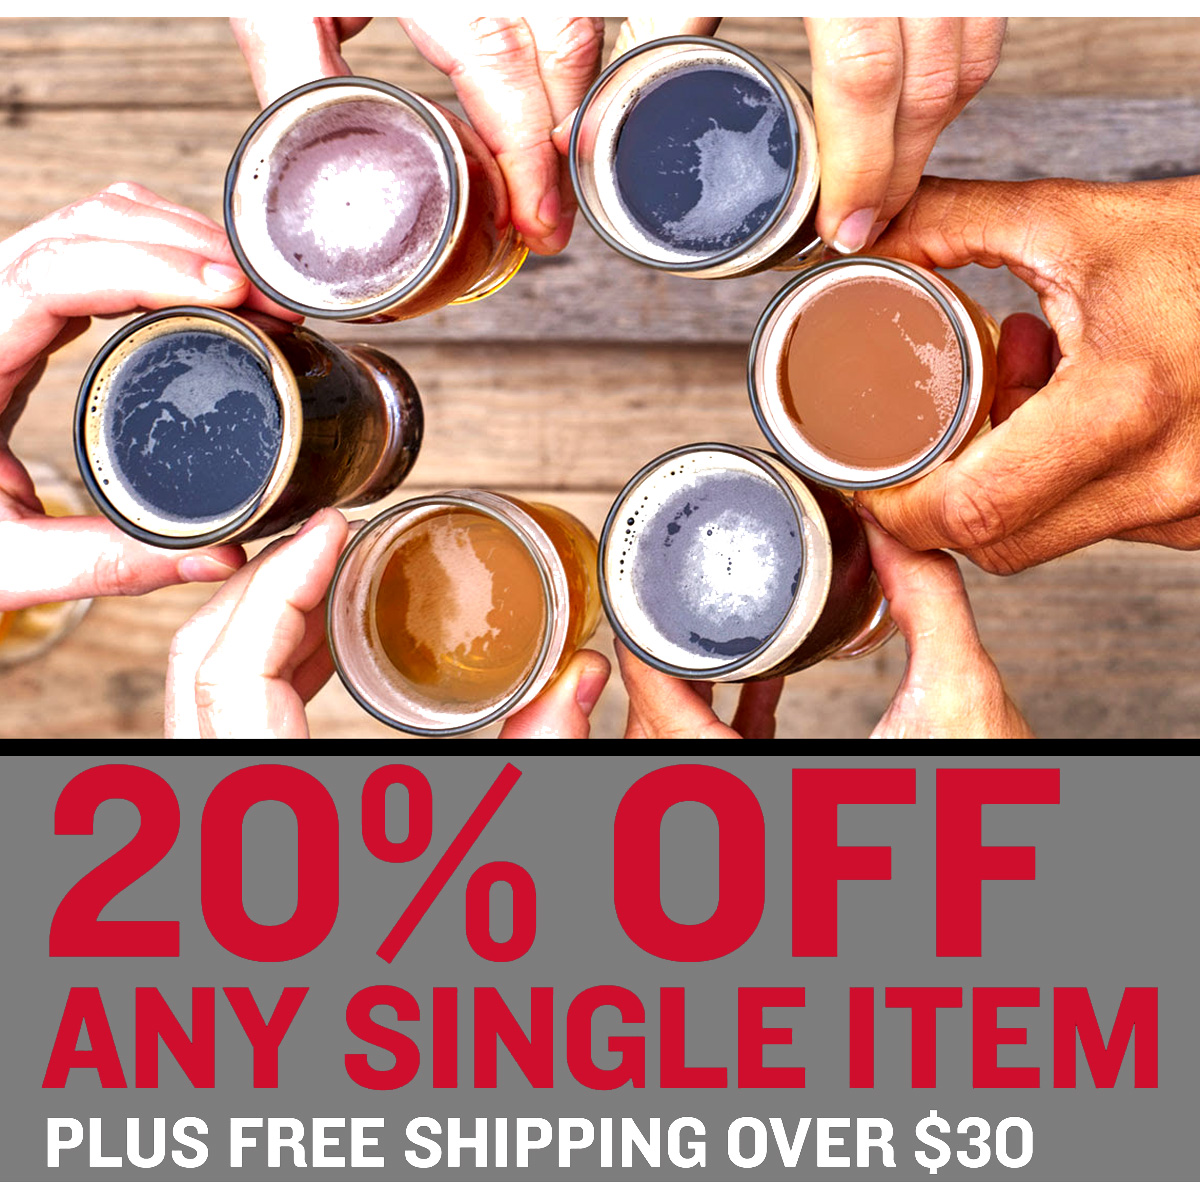 Northern Brewer Save 20% On A Single Item At Northern Brewer With this Promo Code Coupon Code